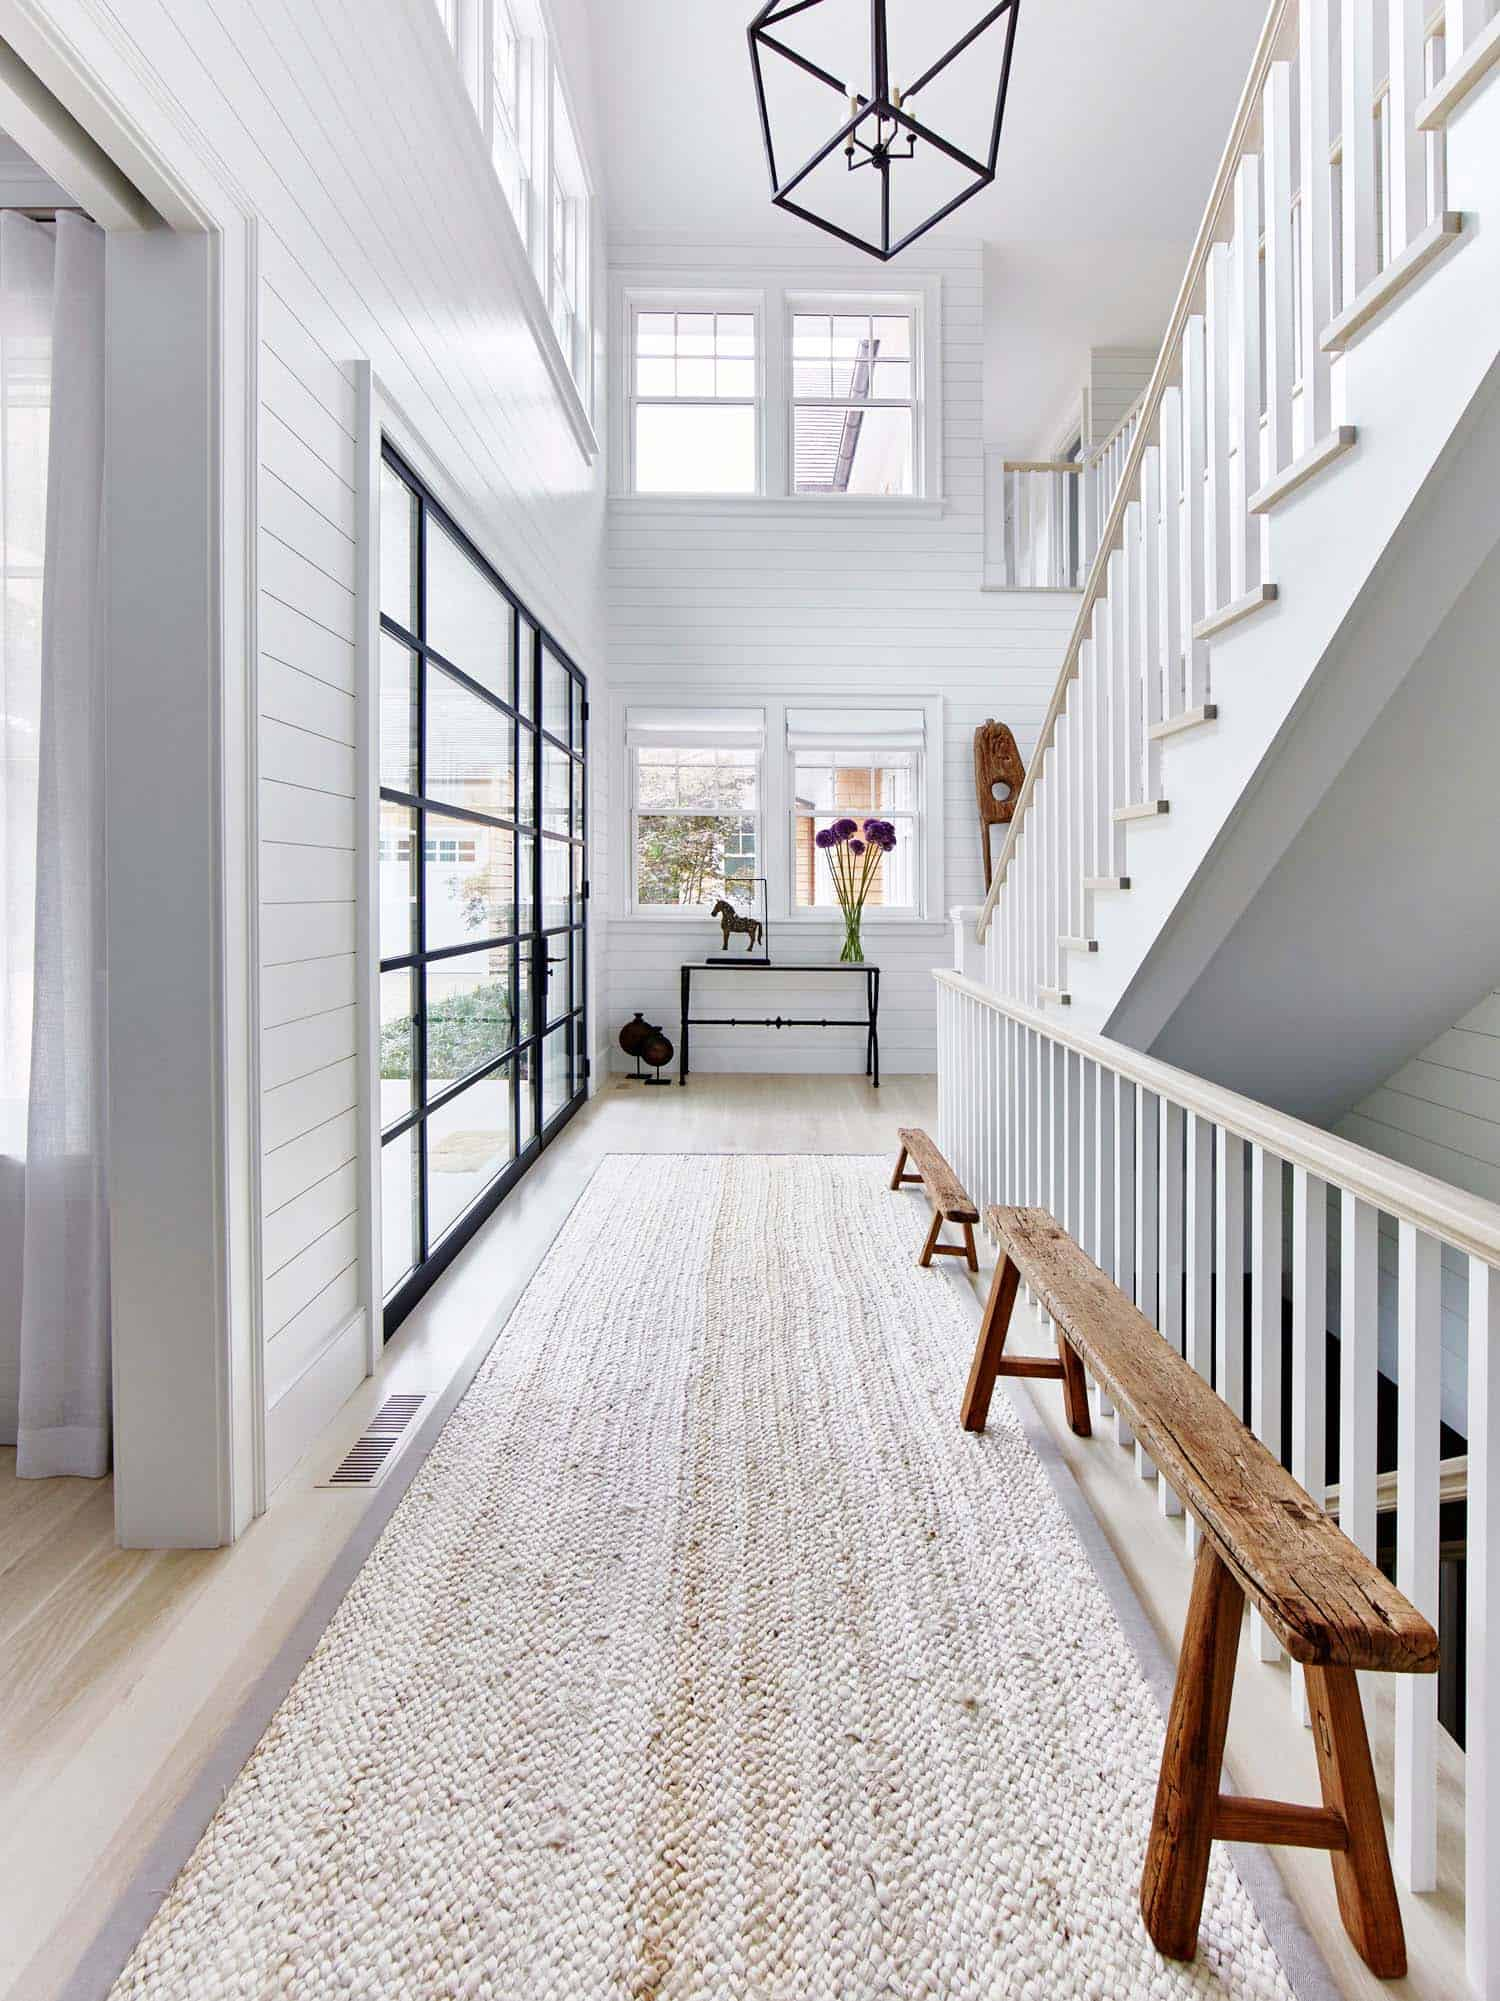 Amagansett Beach House-Chango-Co-04-1 Kindesign